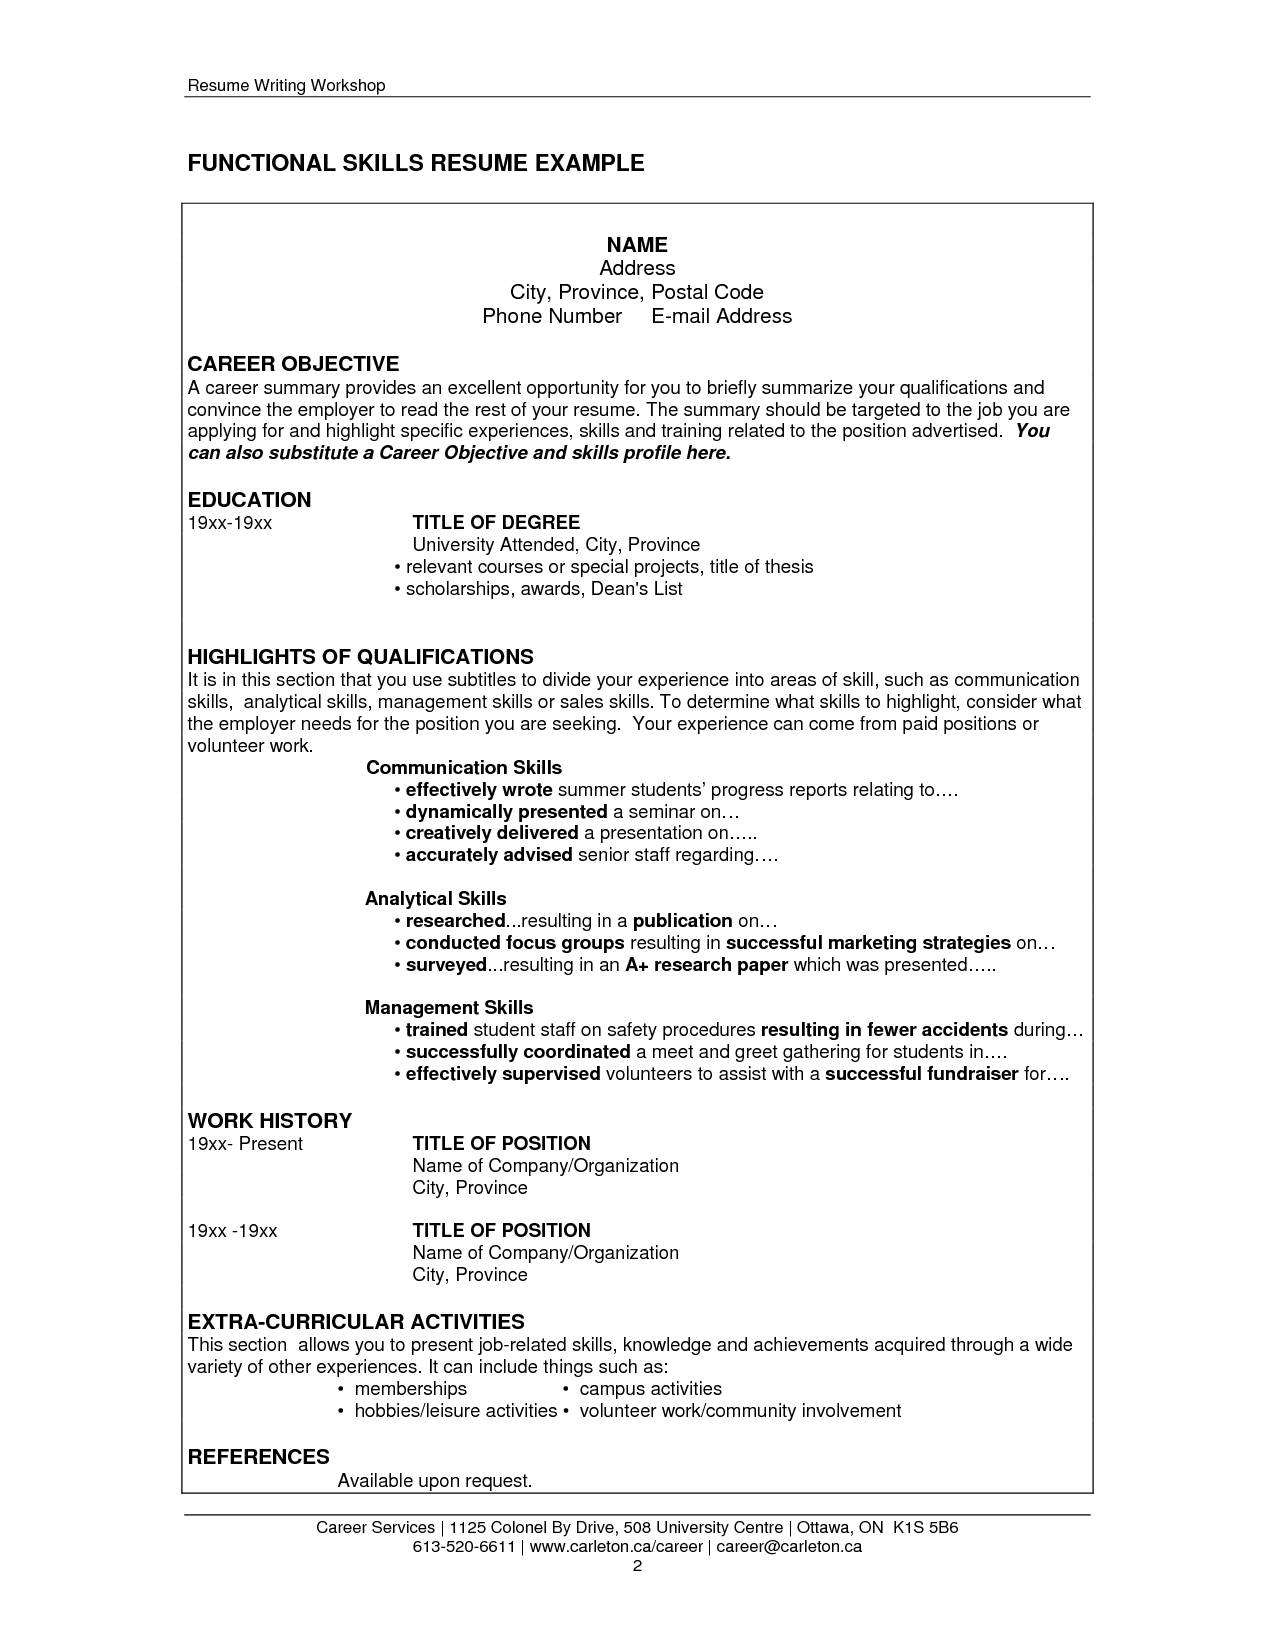 High Quality Qualifications Resume Sample With Sample Resume Qualifications